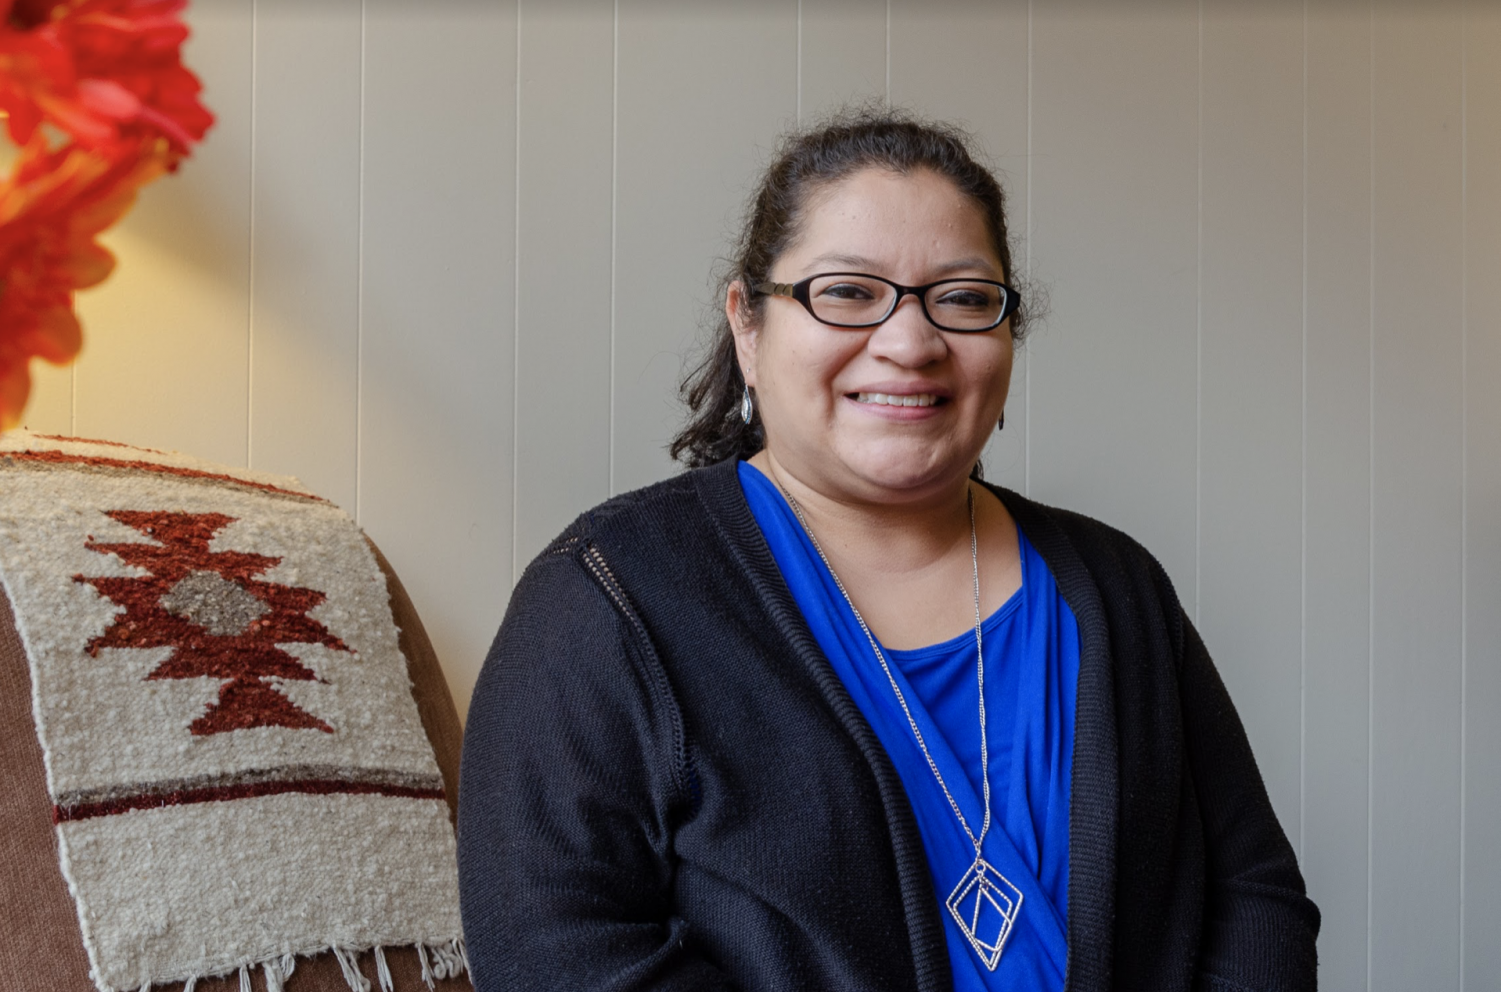 Marla Delgado Guerrero was named as one of Wisconsin's most powerful Latinos.